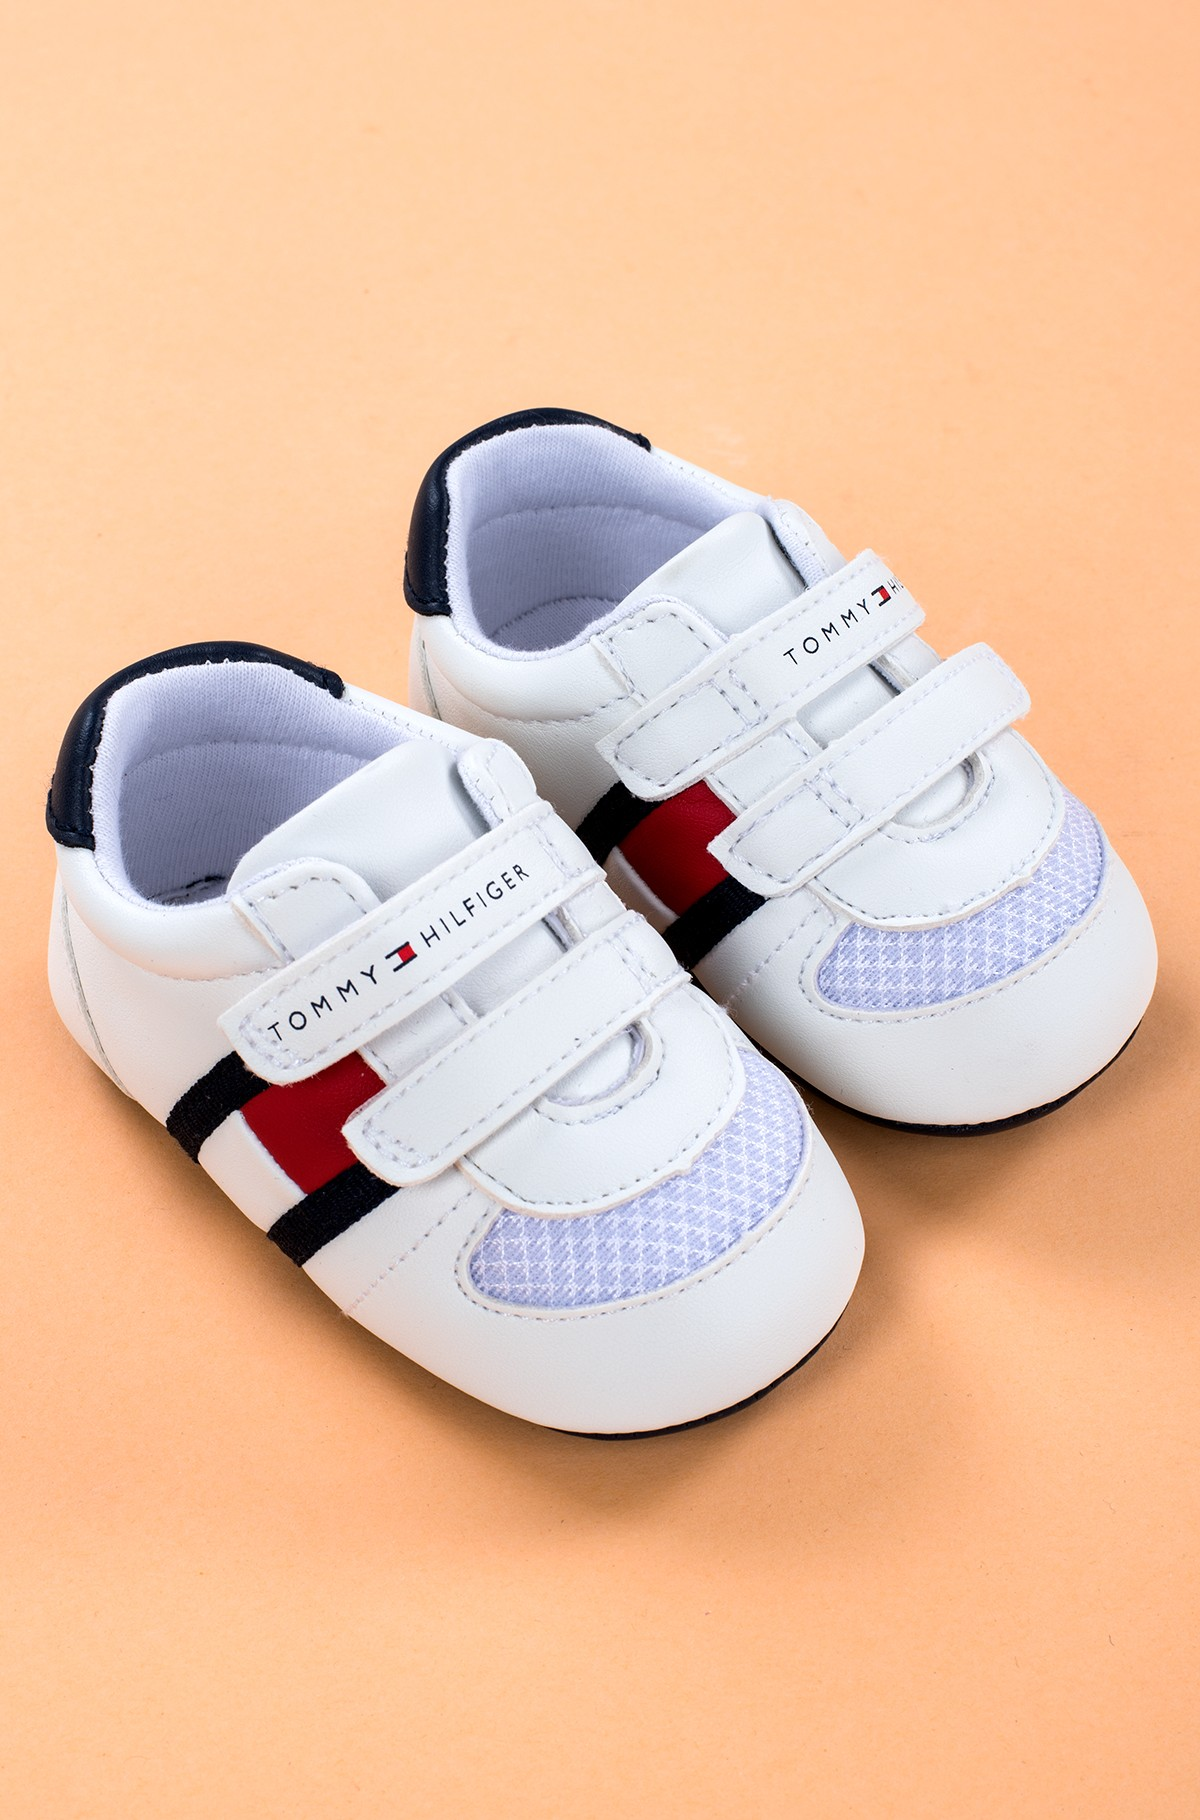 Kids' shoes in a gift box T0B4-30191-0271X336-full-1